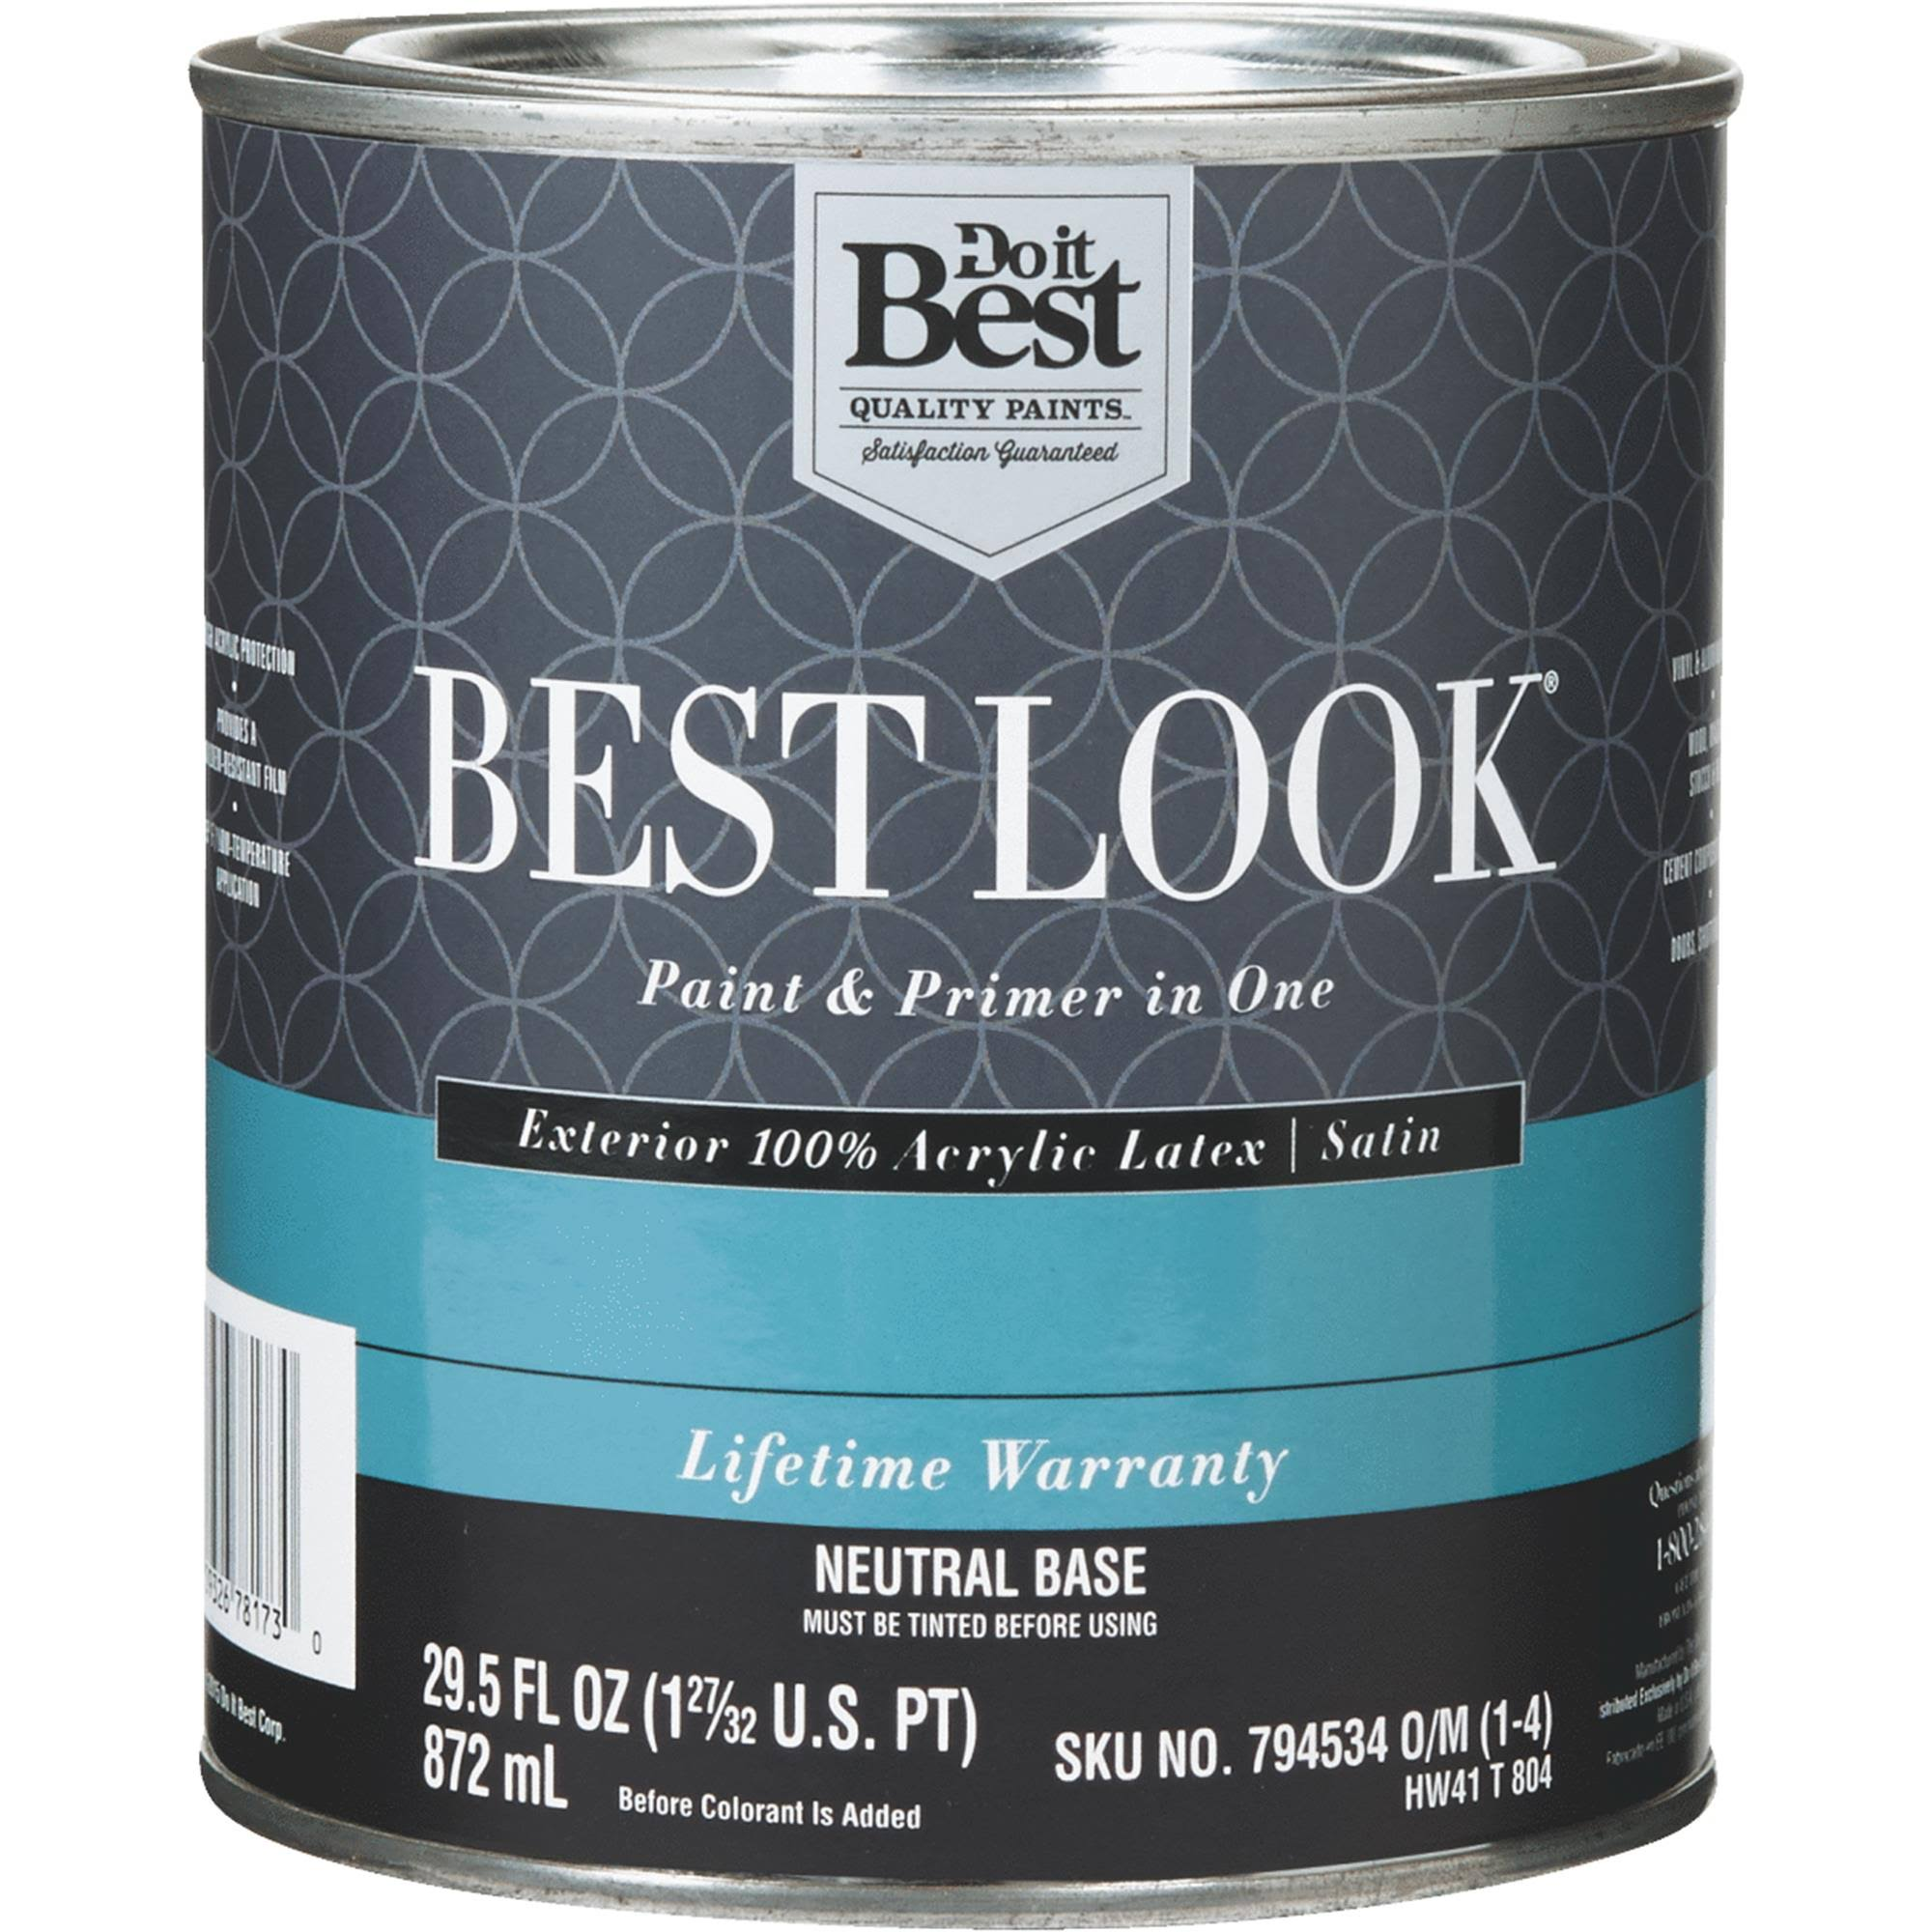 Sherwin Williams Best Look 100% Acrylic Latex Paint & Primer in One Satin Exterior House Paint HW41T0804-14